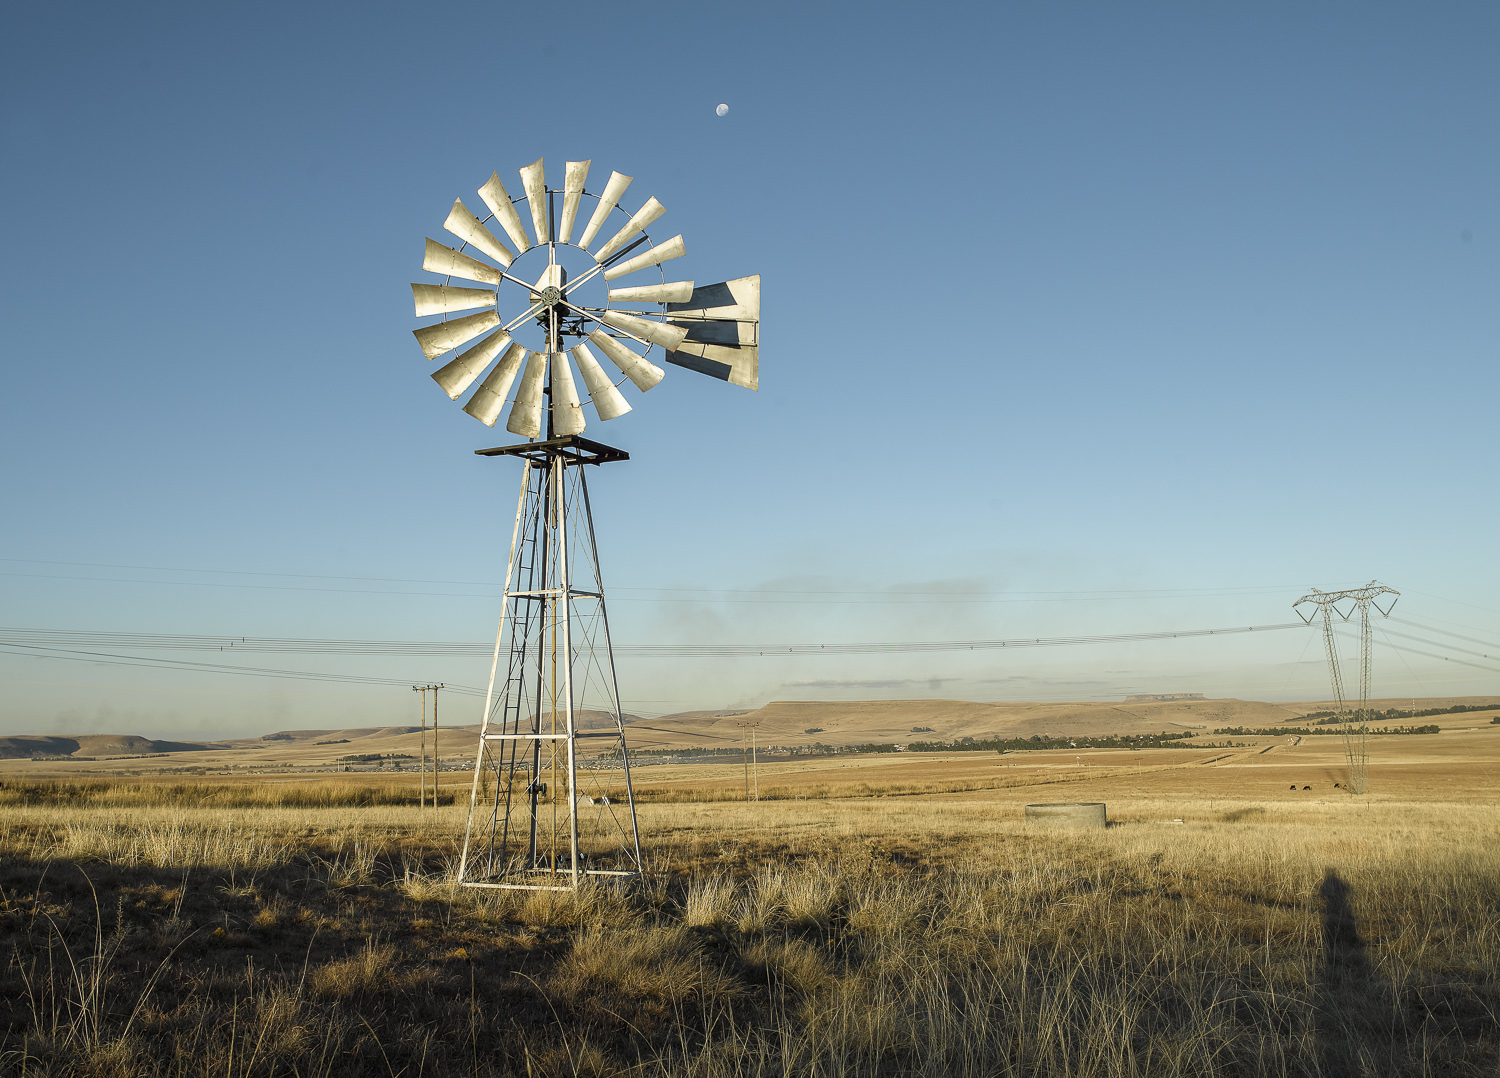 Windmill - South Africa, 2006